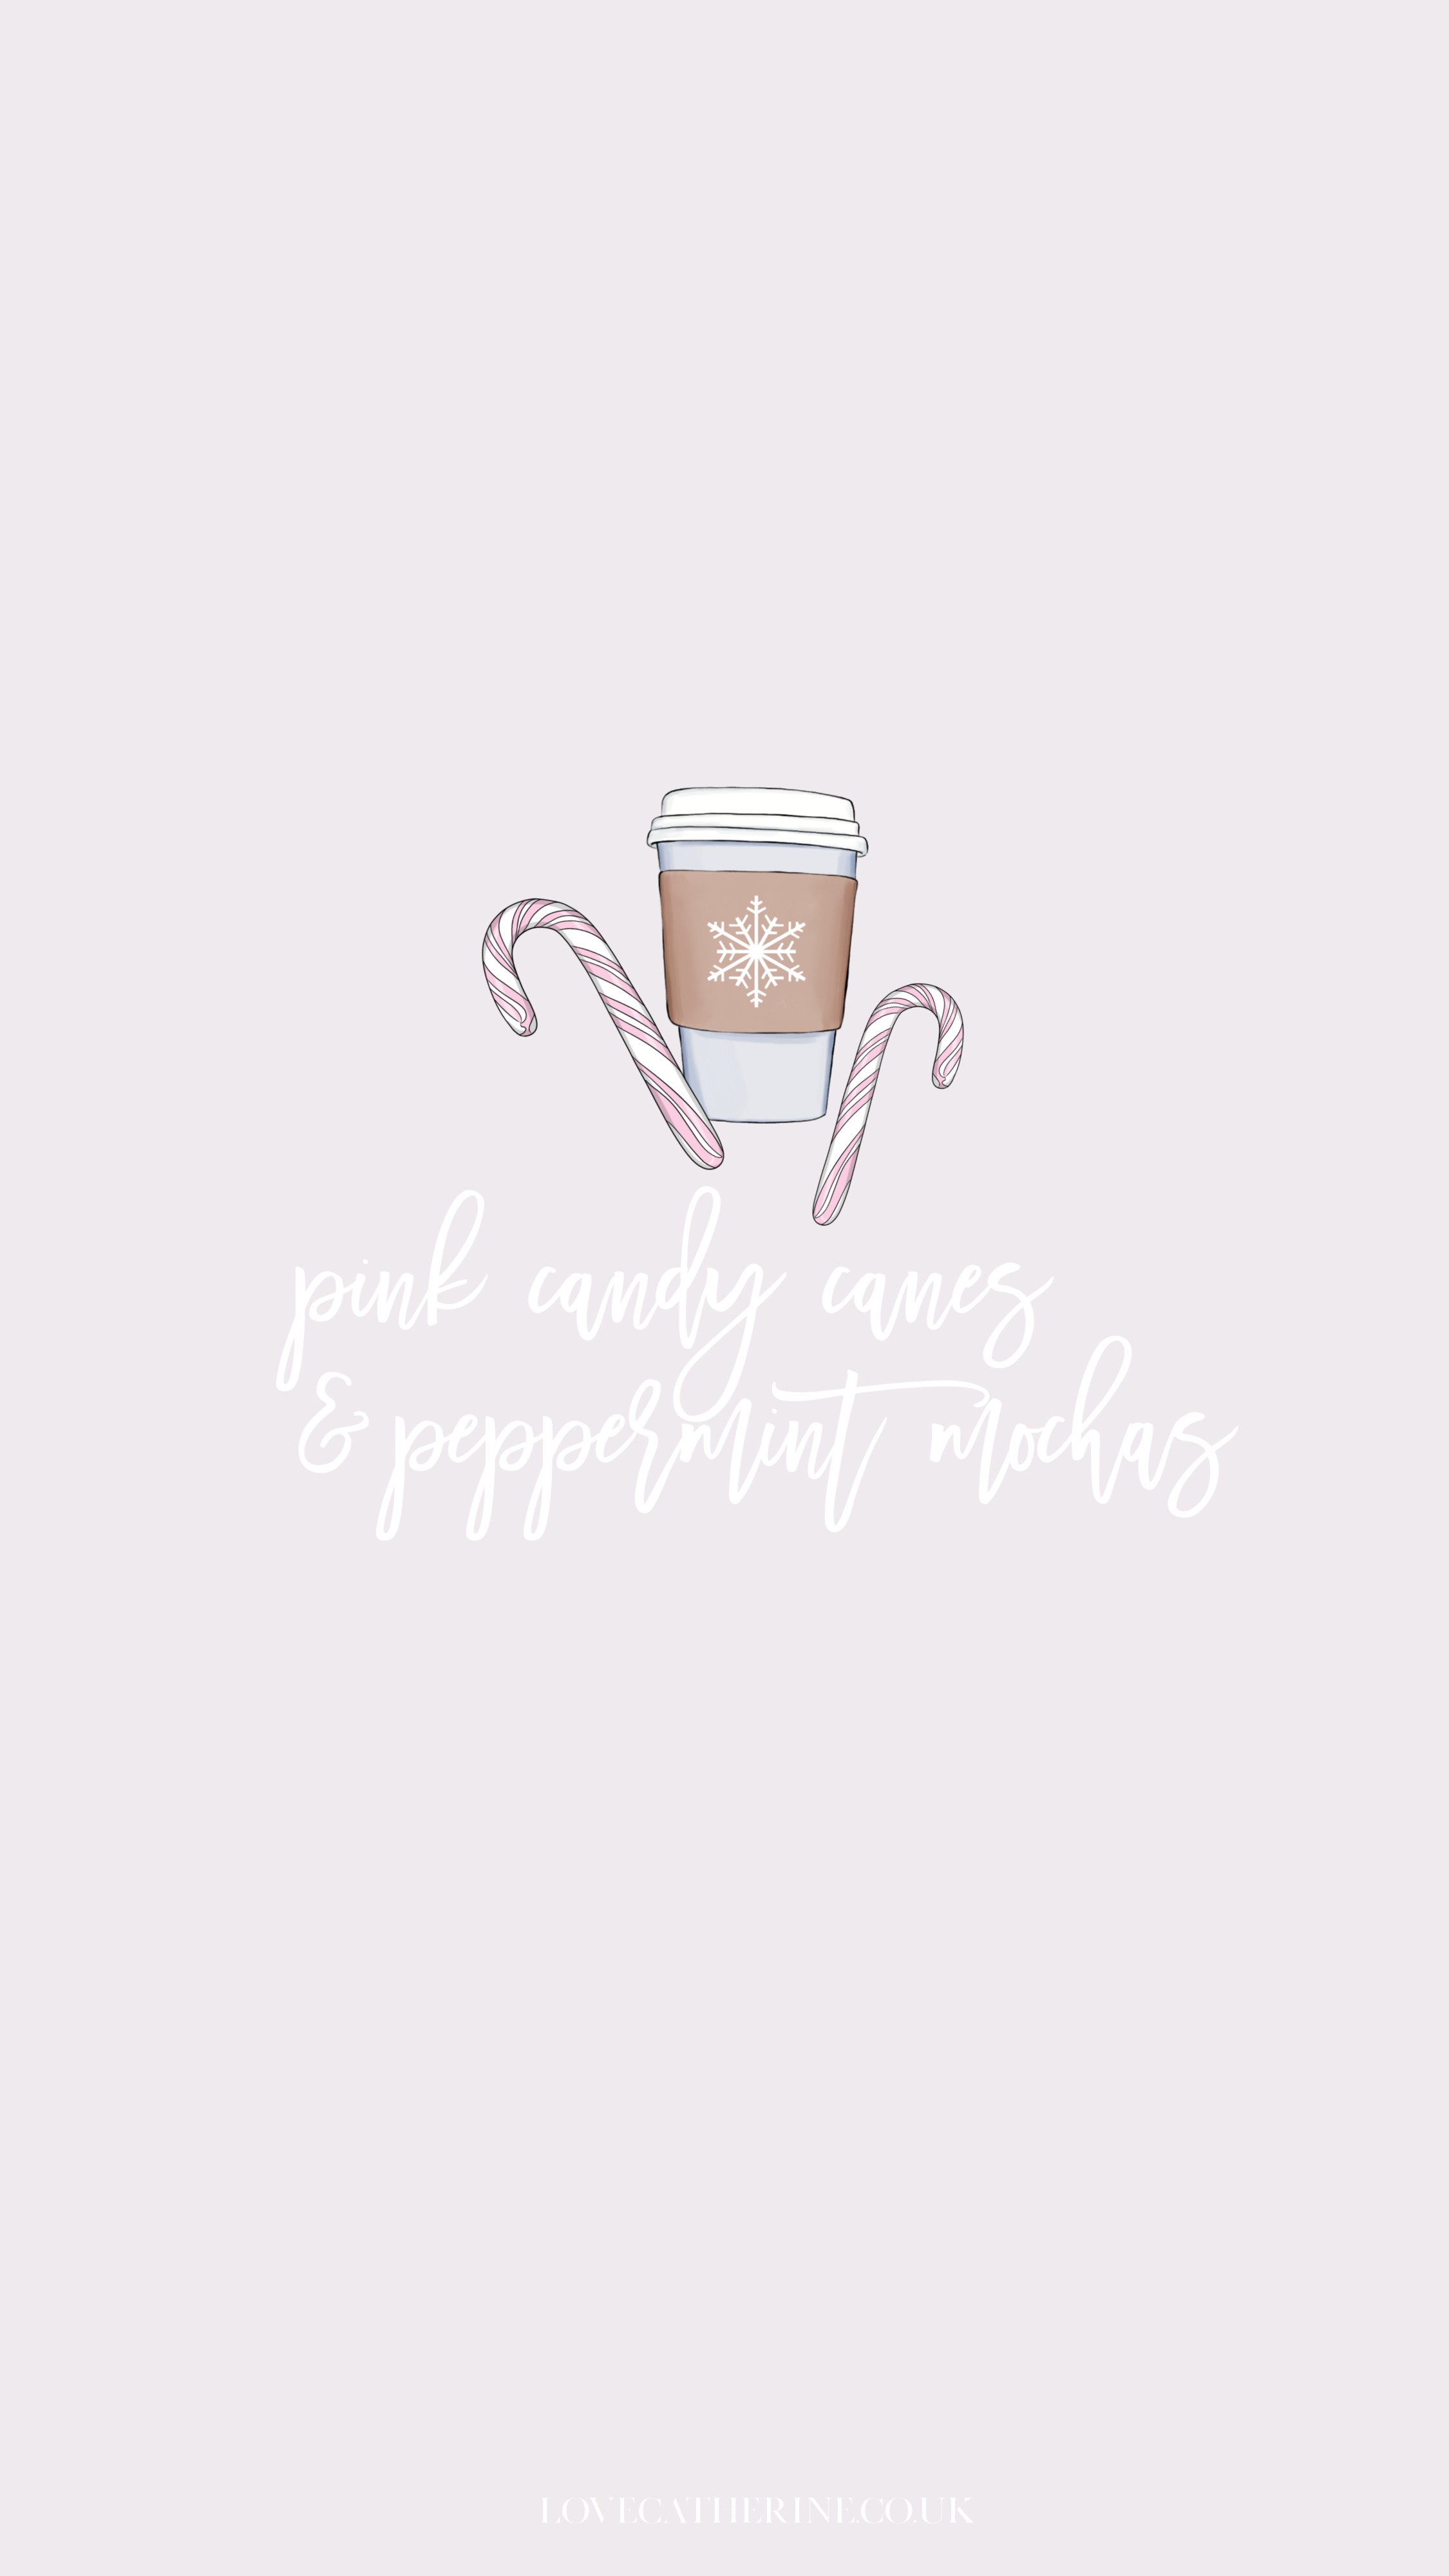 Free Cute Girly Winter Phone Wallpapers For Christmas Cute Christmas Wallpaper Iphone Wallpaper Winter Wallpaper Iphone Christmas